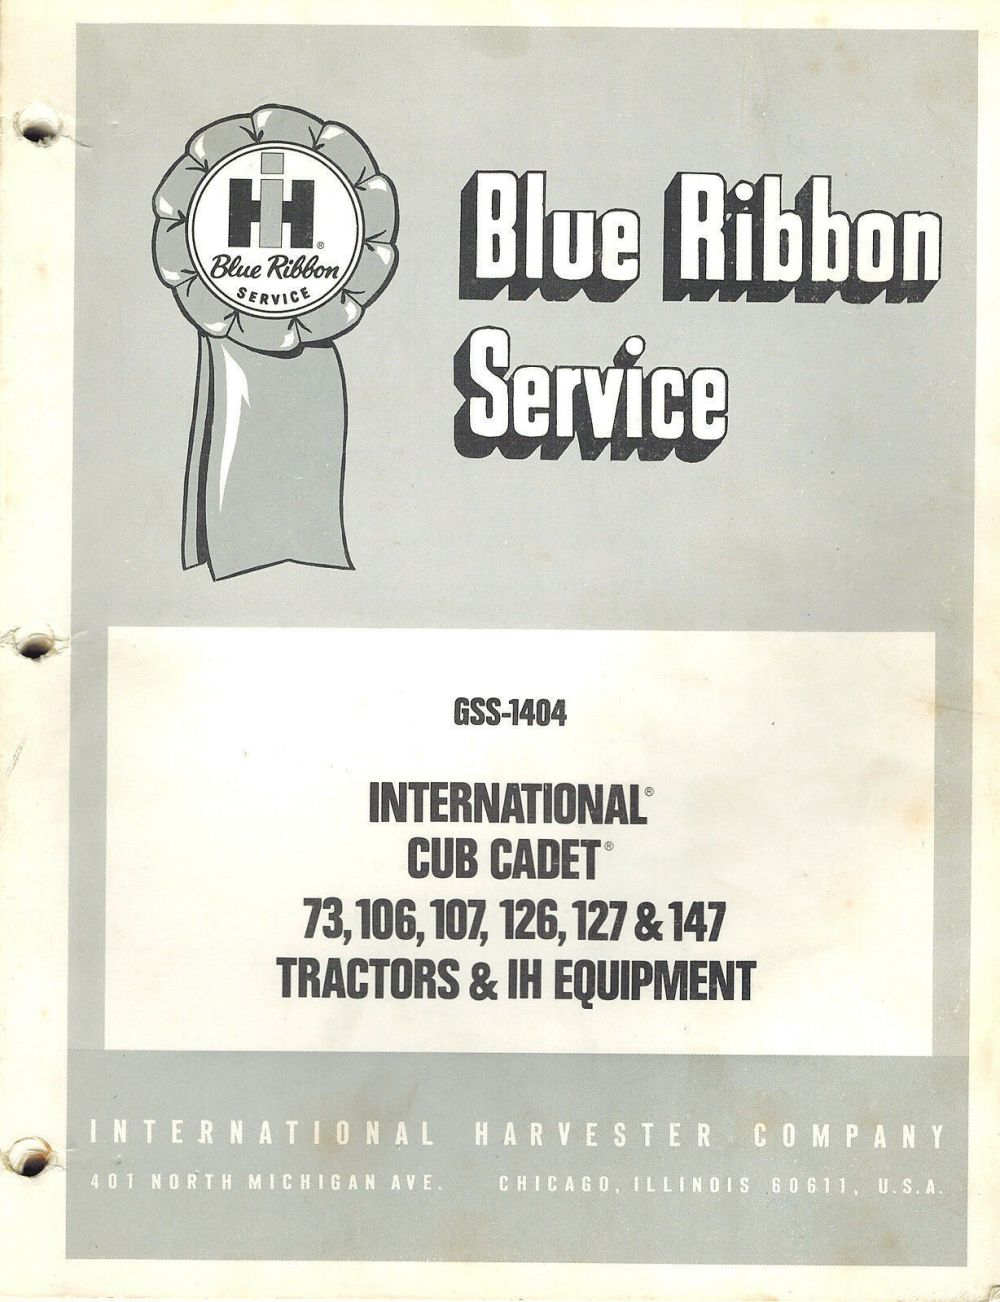 medium resolution of  of ih cub cadet d and d blue ribbon service manual uploaded by ppmurillo farmall ih genuine parts farm equipment signs implements tractors